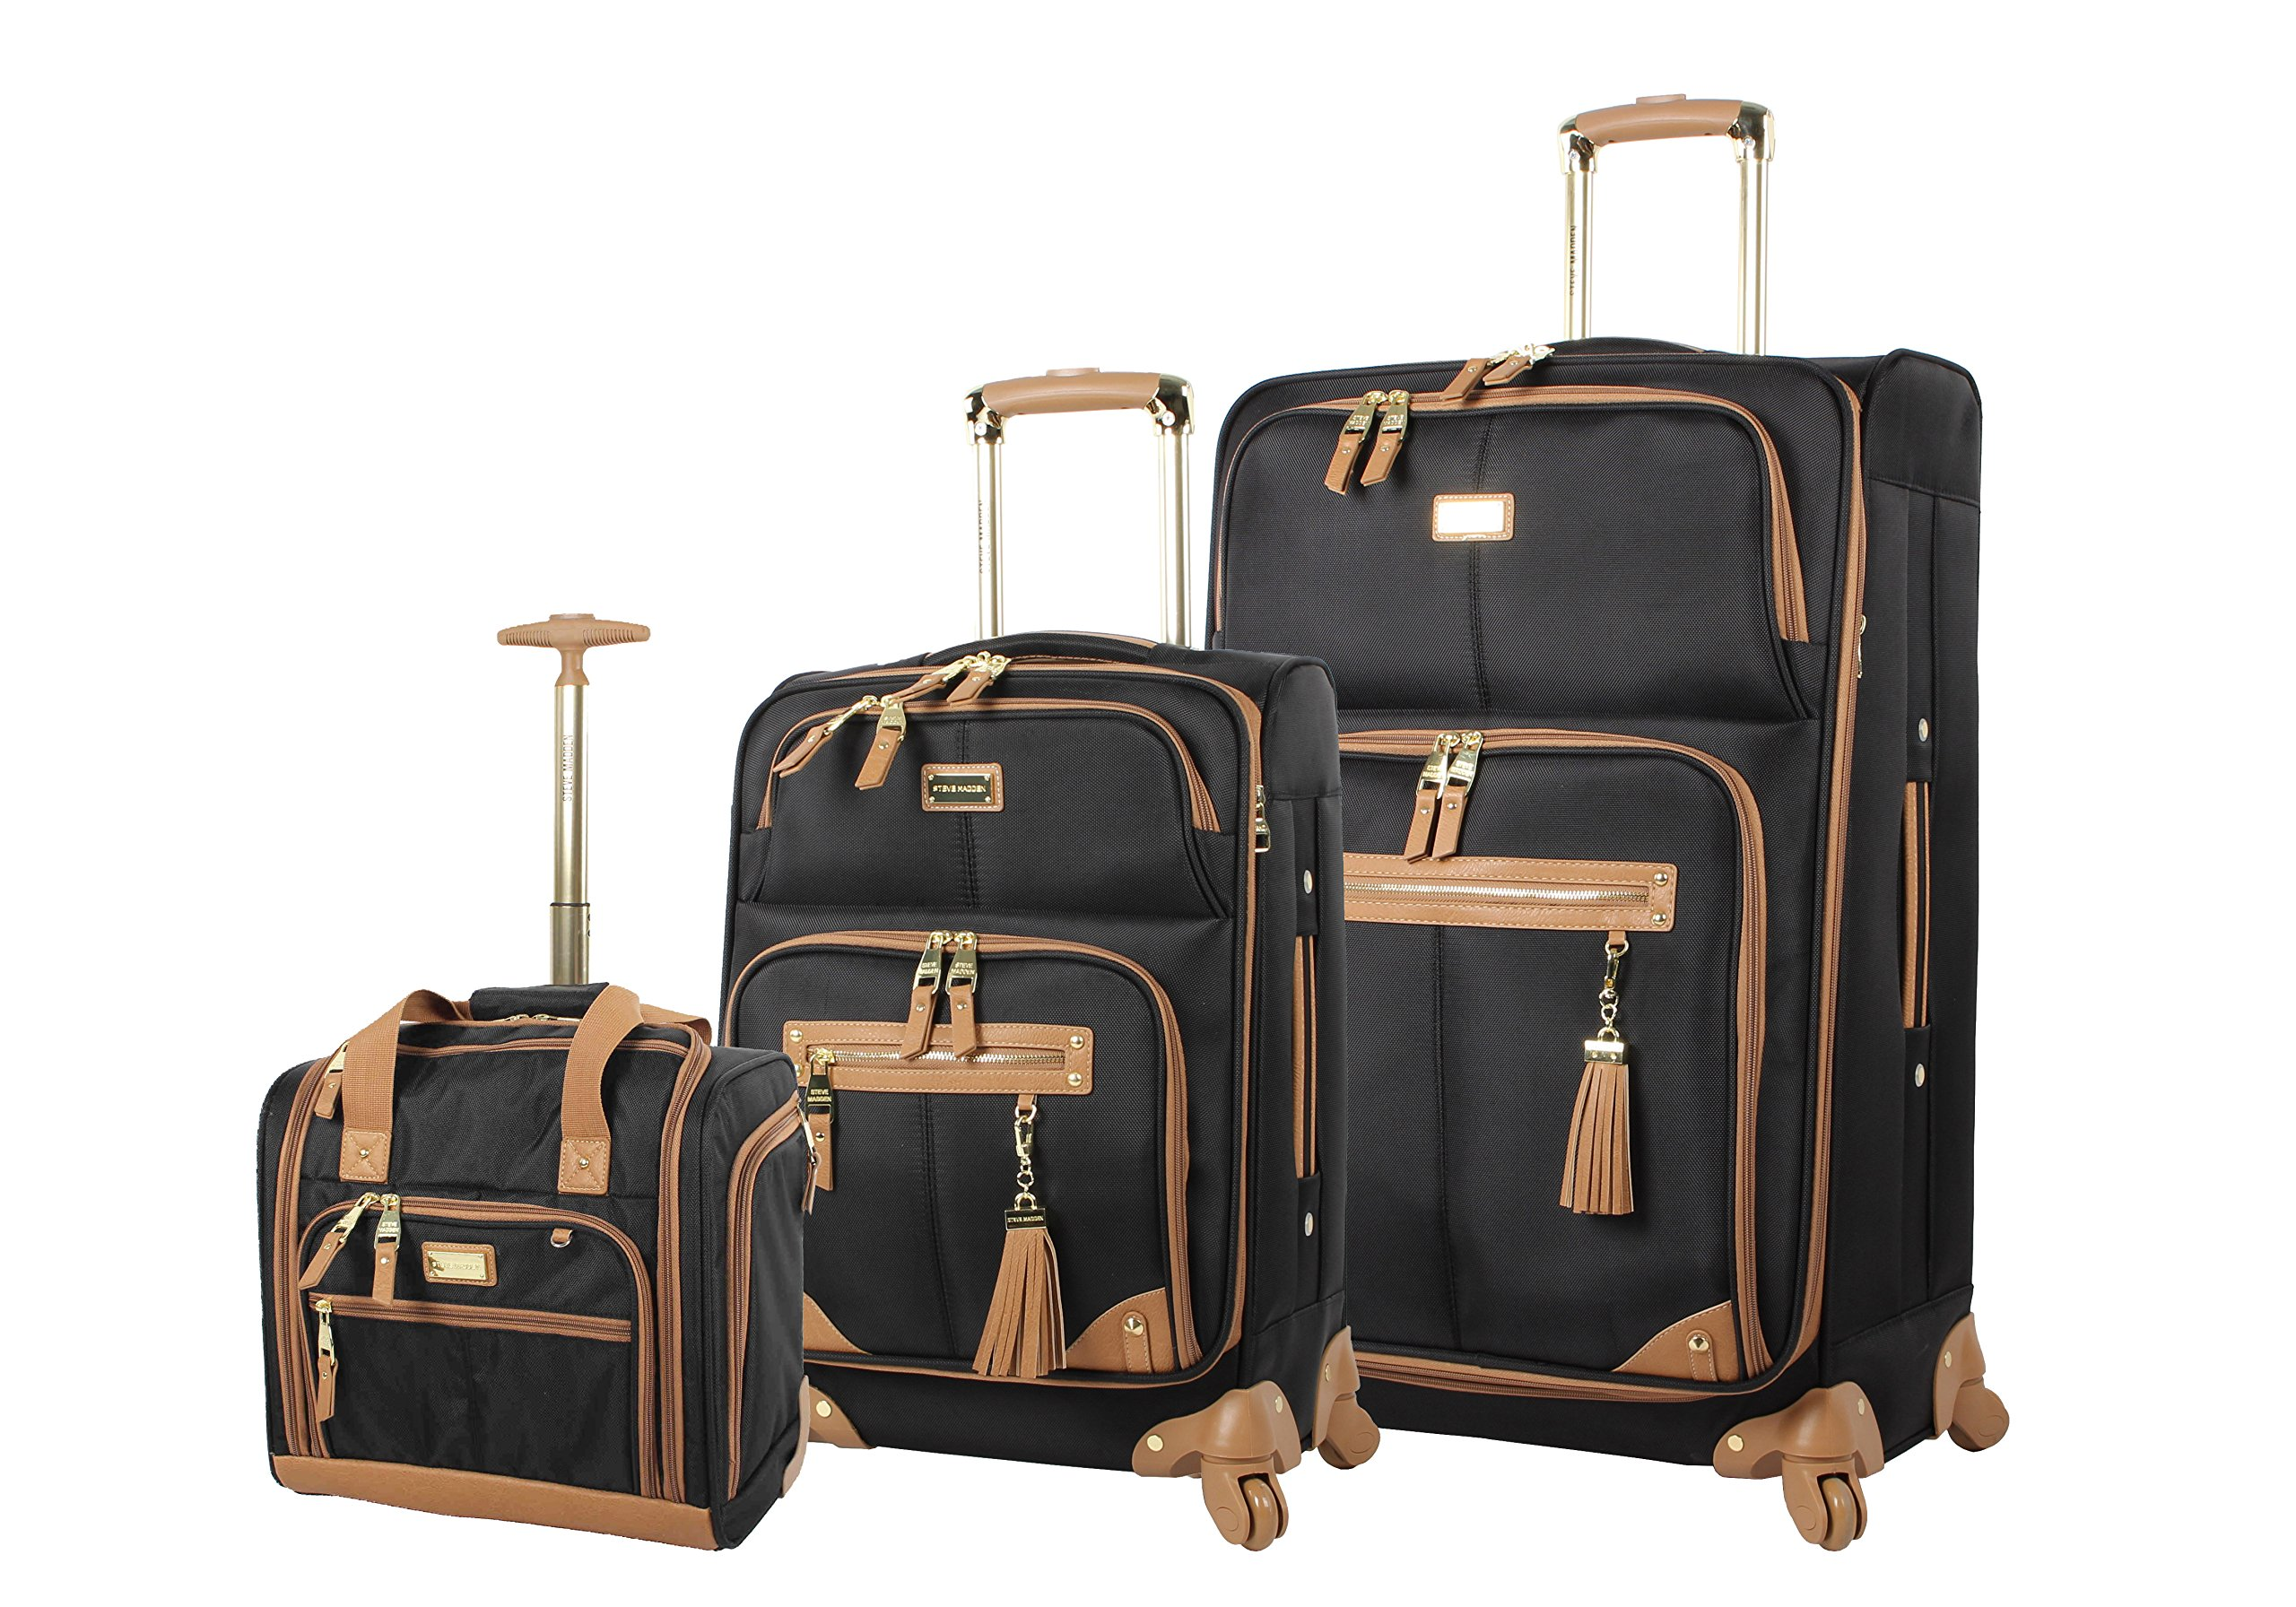 Steve Madden Luggage 3 Piece Softside Spinner Suitcase Set Collection (Harlo Black)